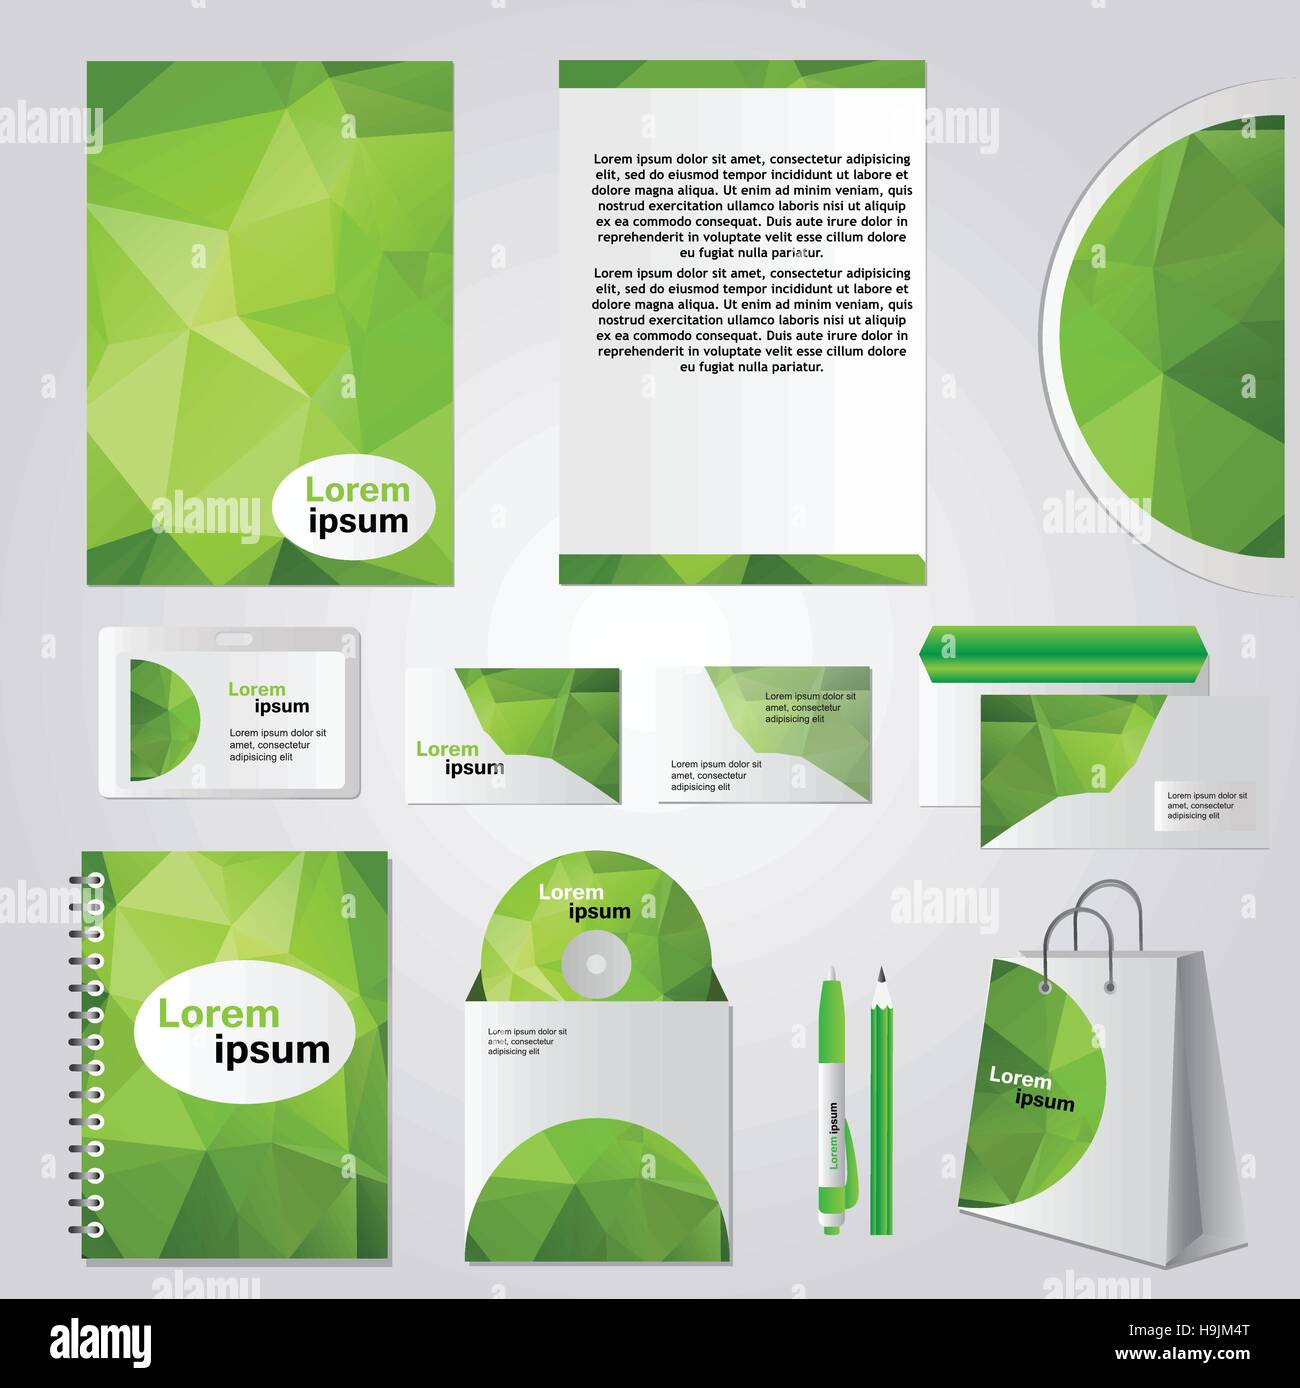 Illustration Design Set Alamy Vector - Identity Corporate Green Art amp; Image Stock Stationery 126415432